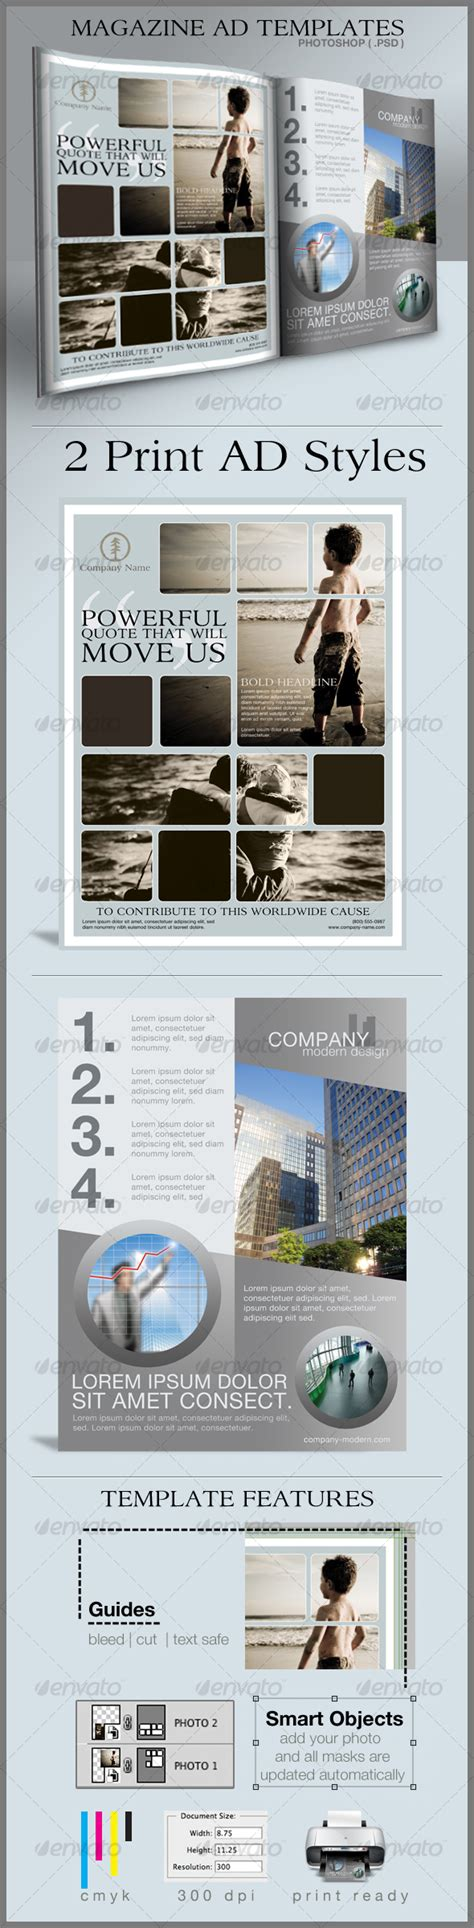 Print Ad Templates By Cursiveq Best Designers Print Ad Design Templates